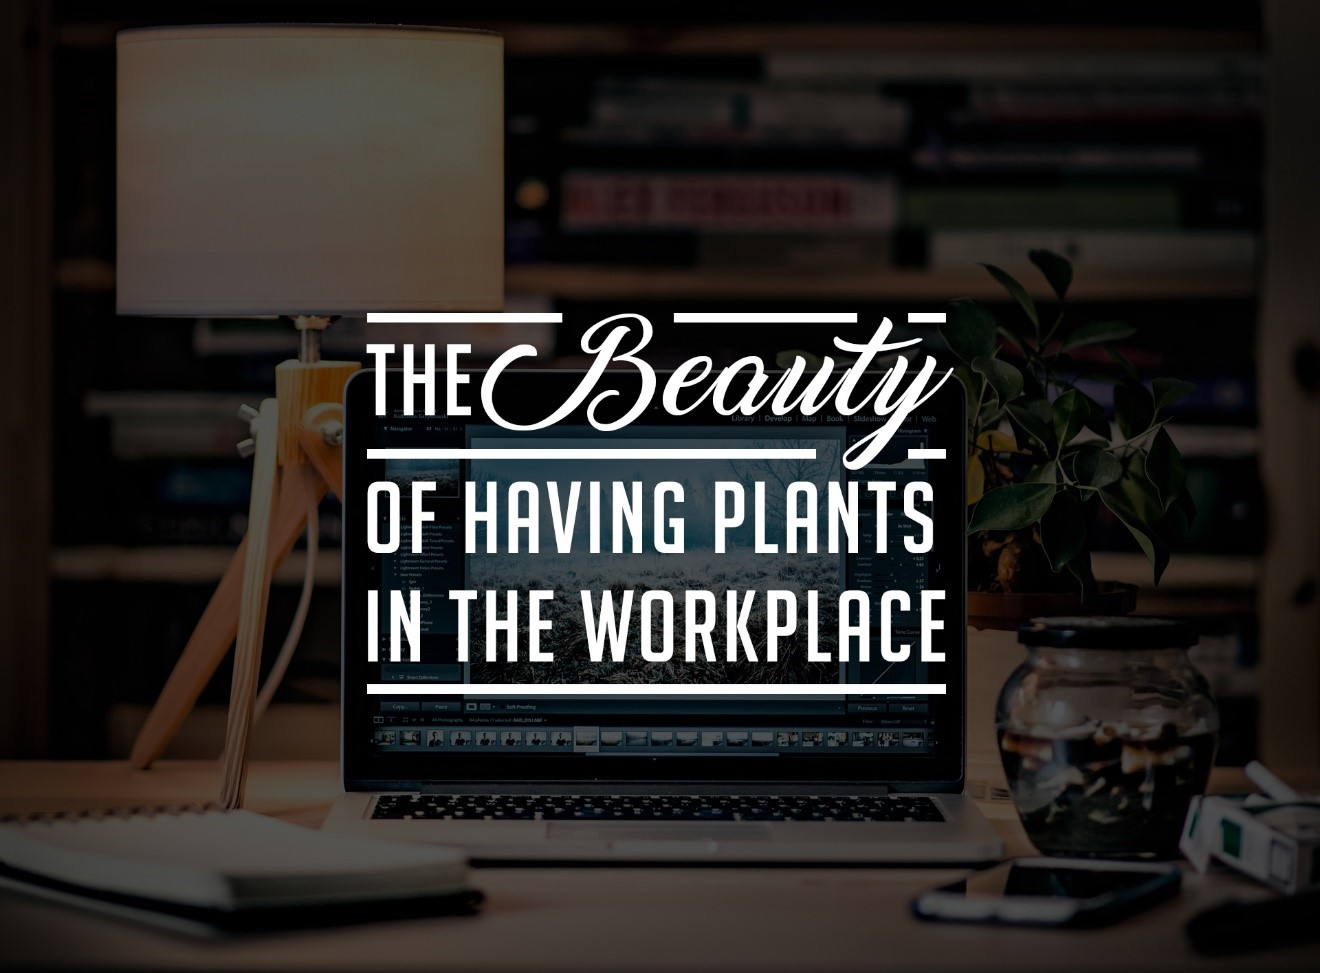 The Beauty of Having Plants in the Workplace